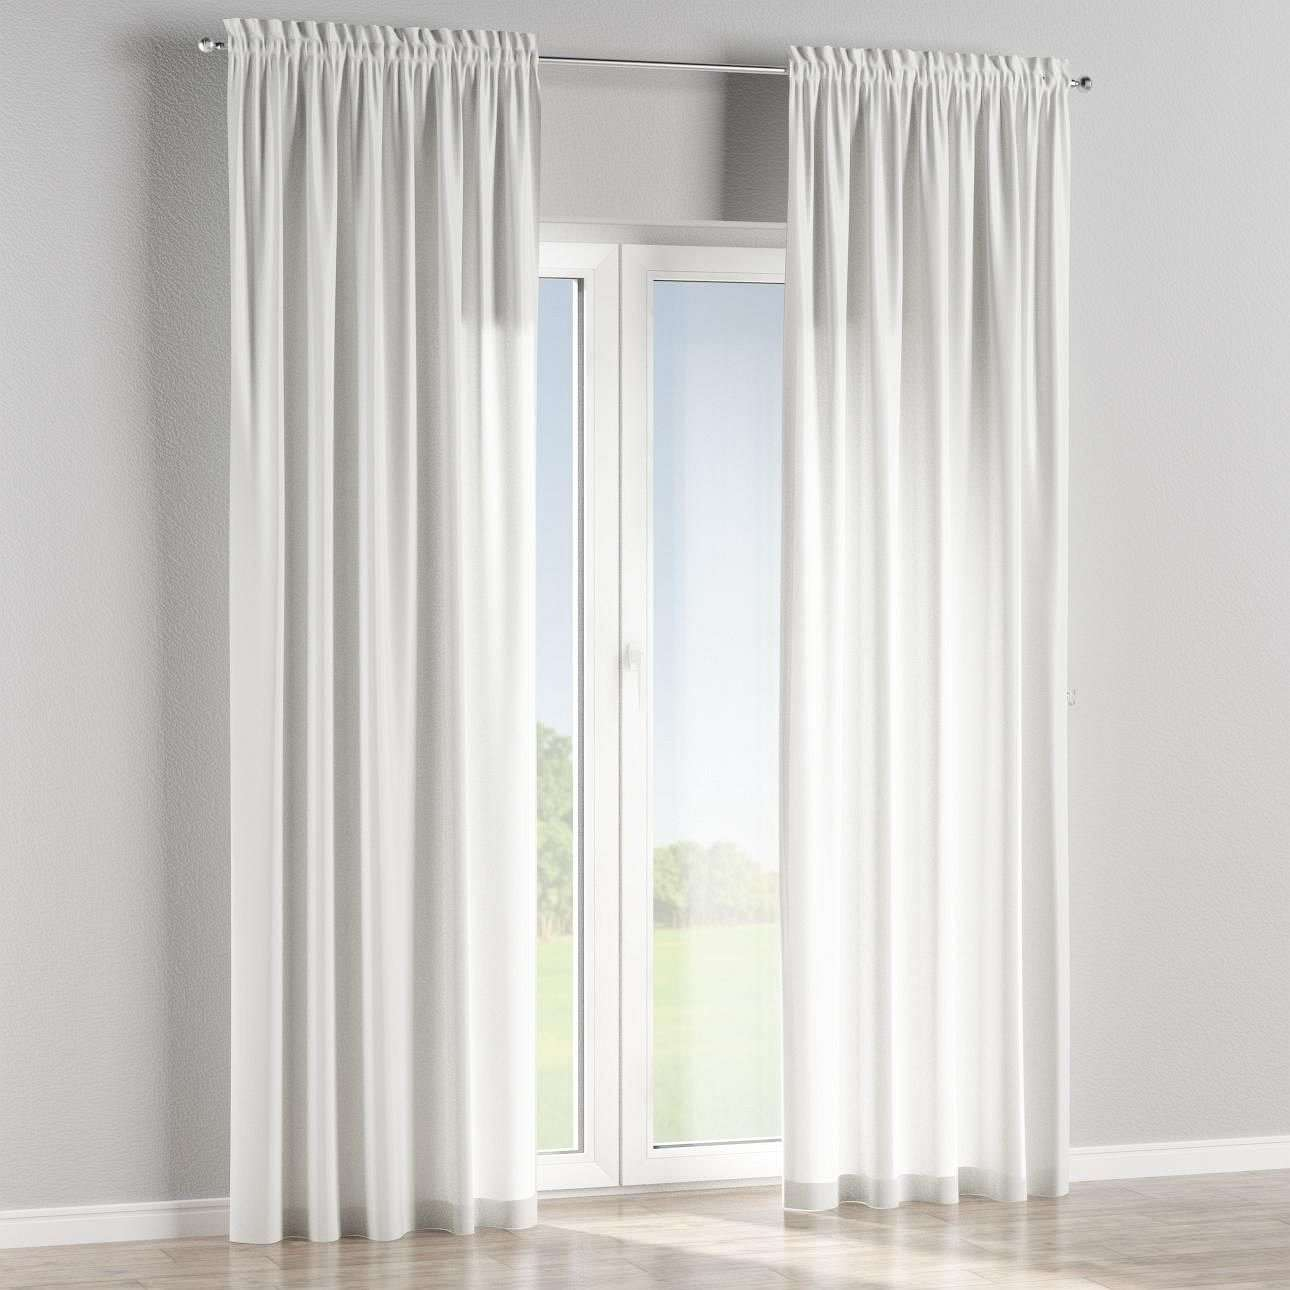 Slot and frill curtains in collection Bristol, fabric: 126-09